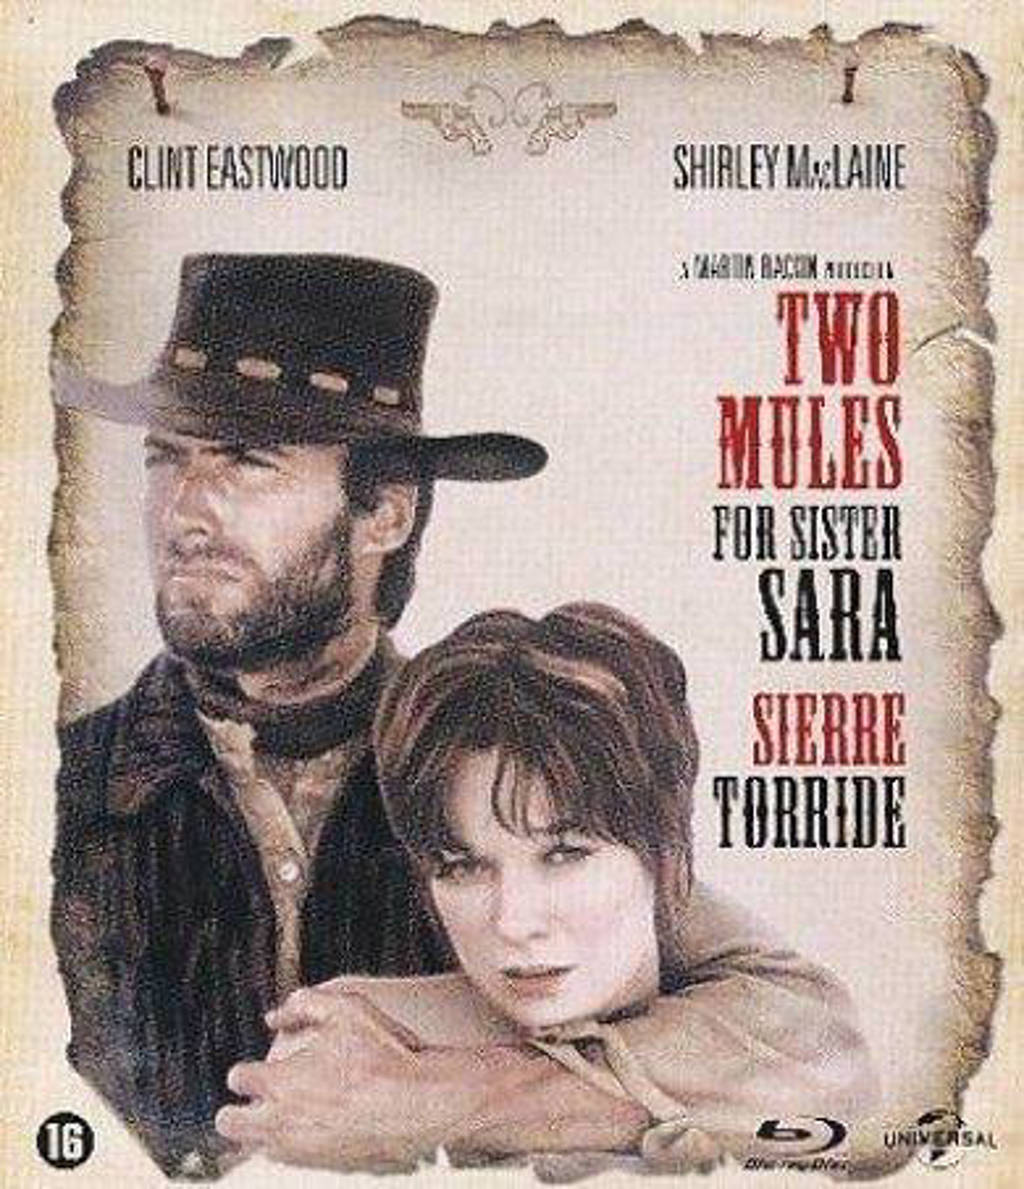 Two mules for sister Sarah (Blu-ray)